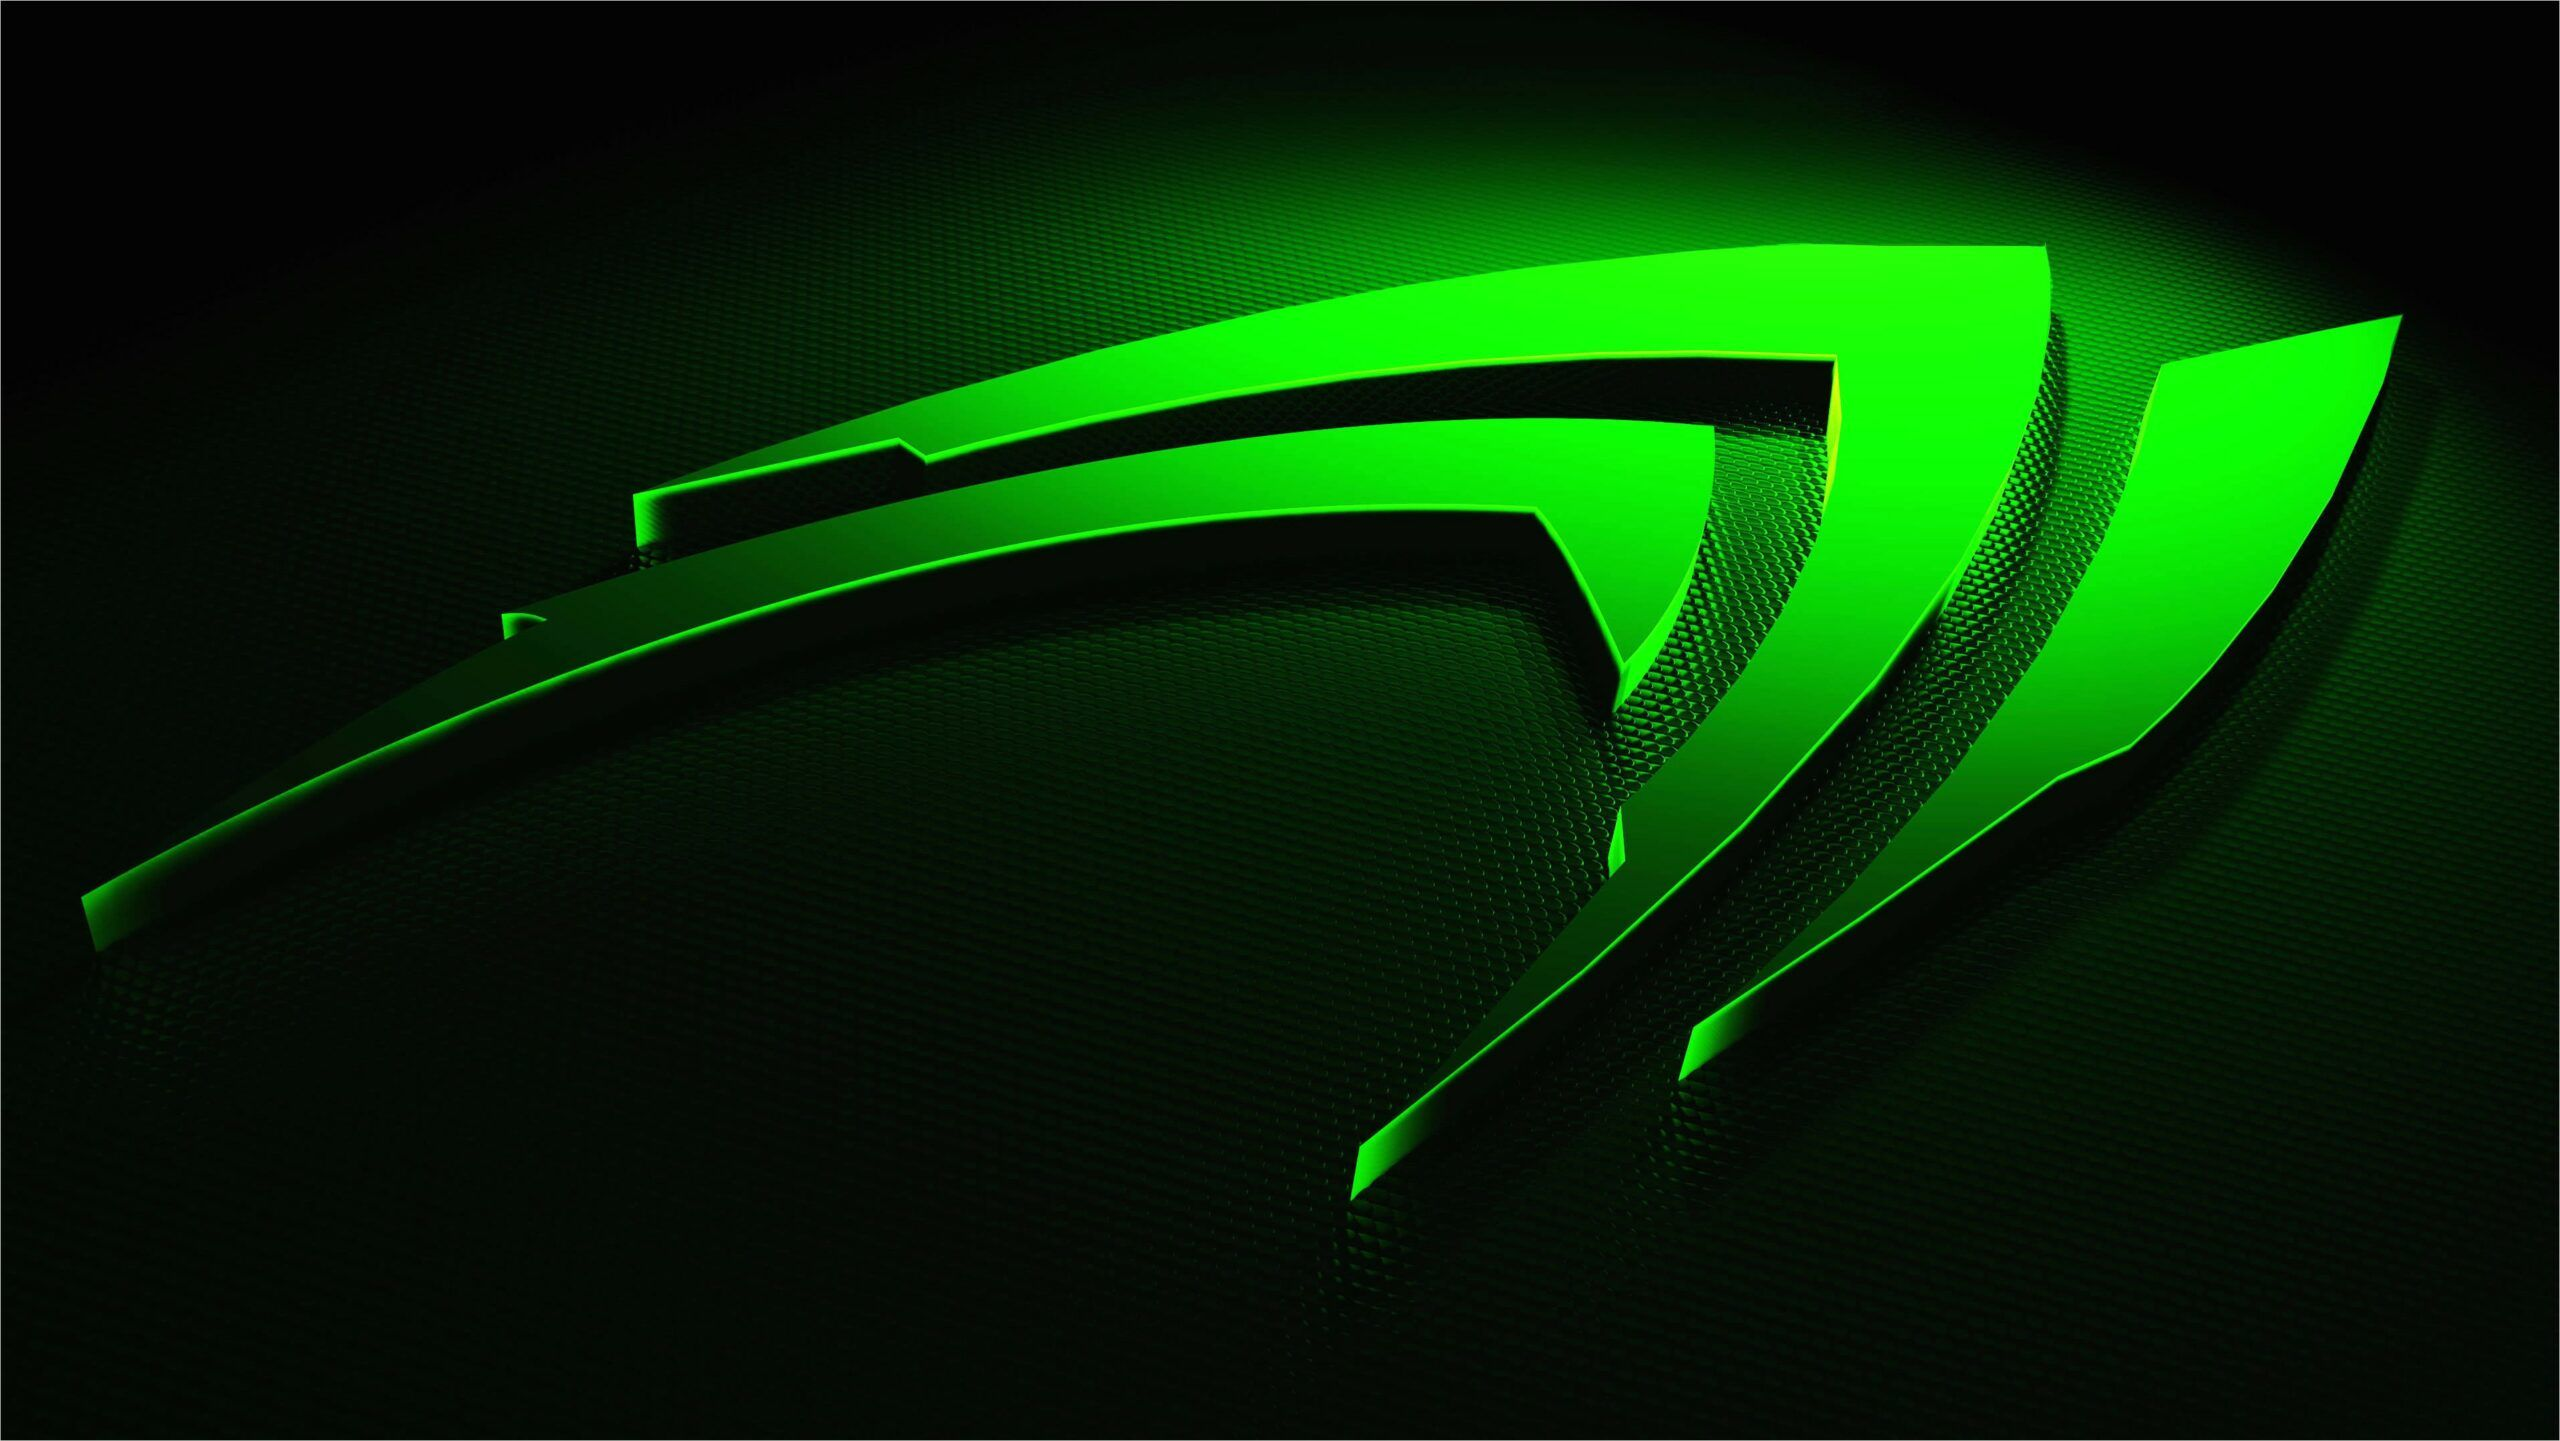 3 840 X 1440 Rgb 4k Wallpaper In 2020 Graphic Card Nvidia Hd Cool Wallpapers